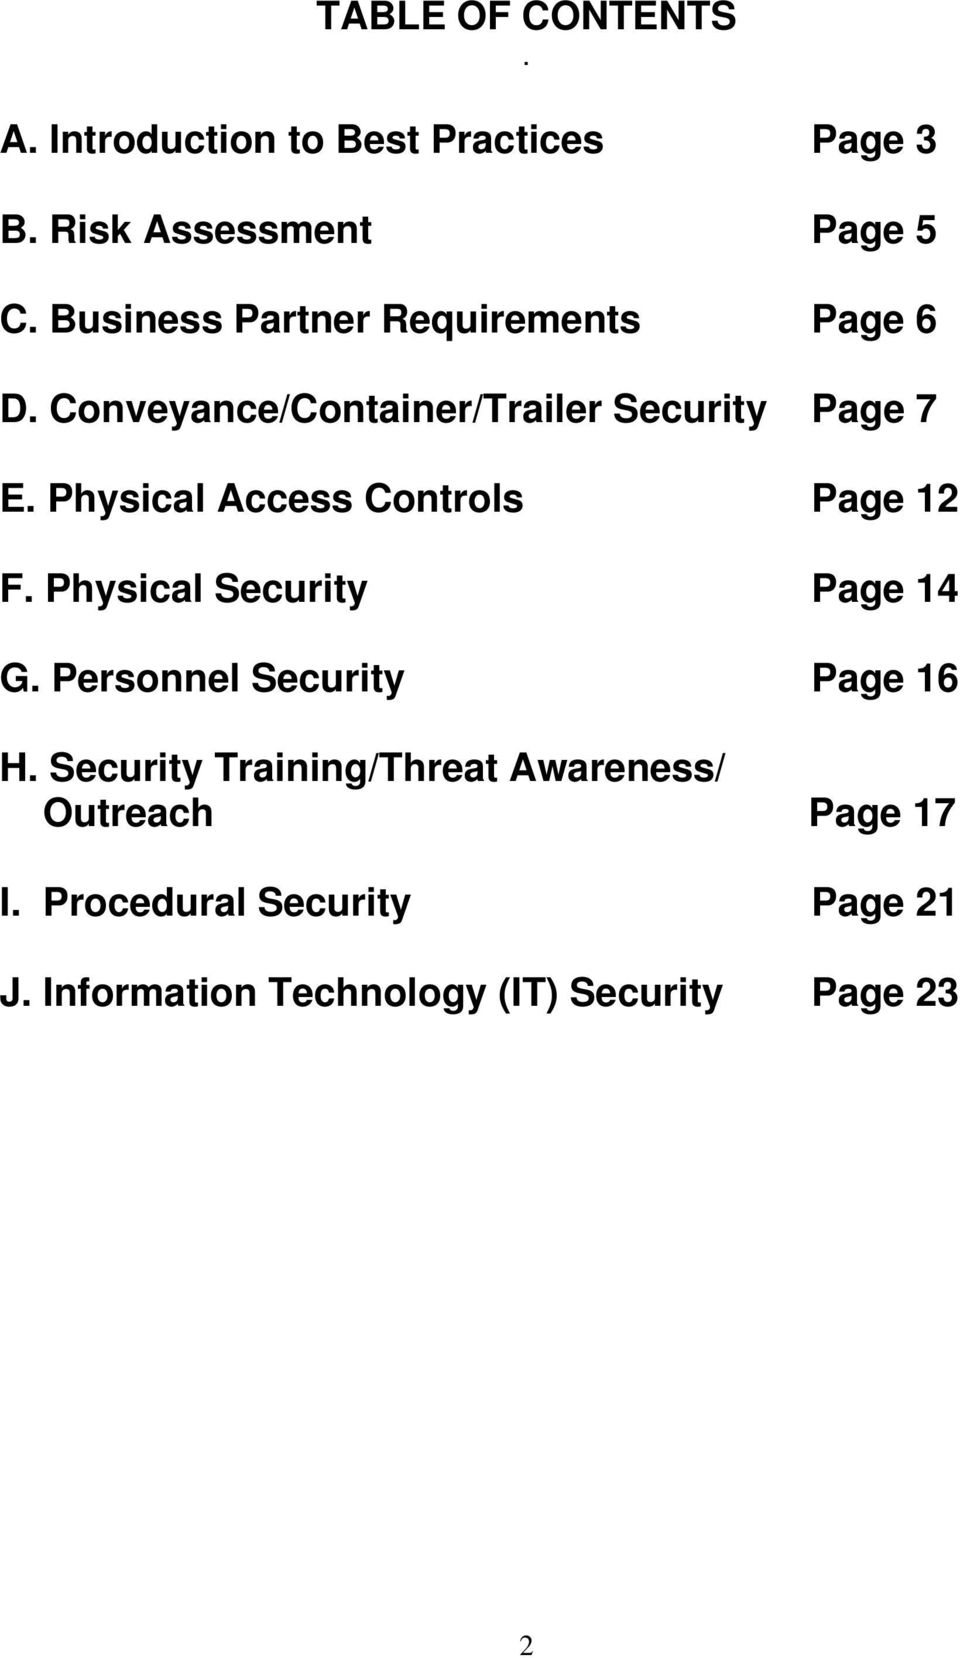 Physical Access Controls Page 12 F. Physical Security Page 14 G. Personnel Security Page 16 H.